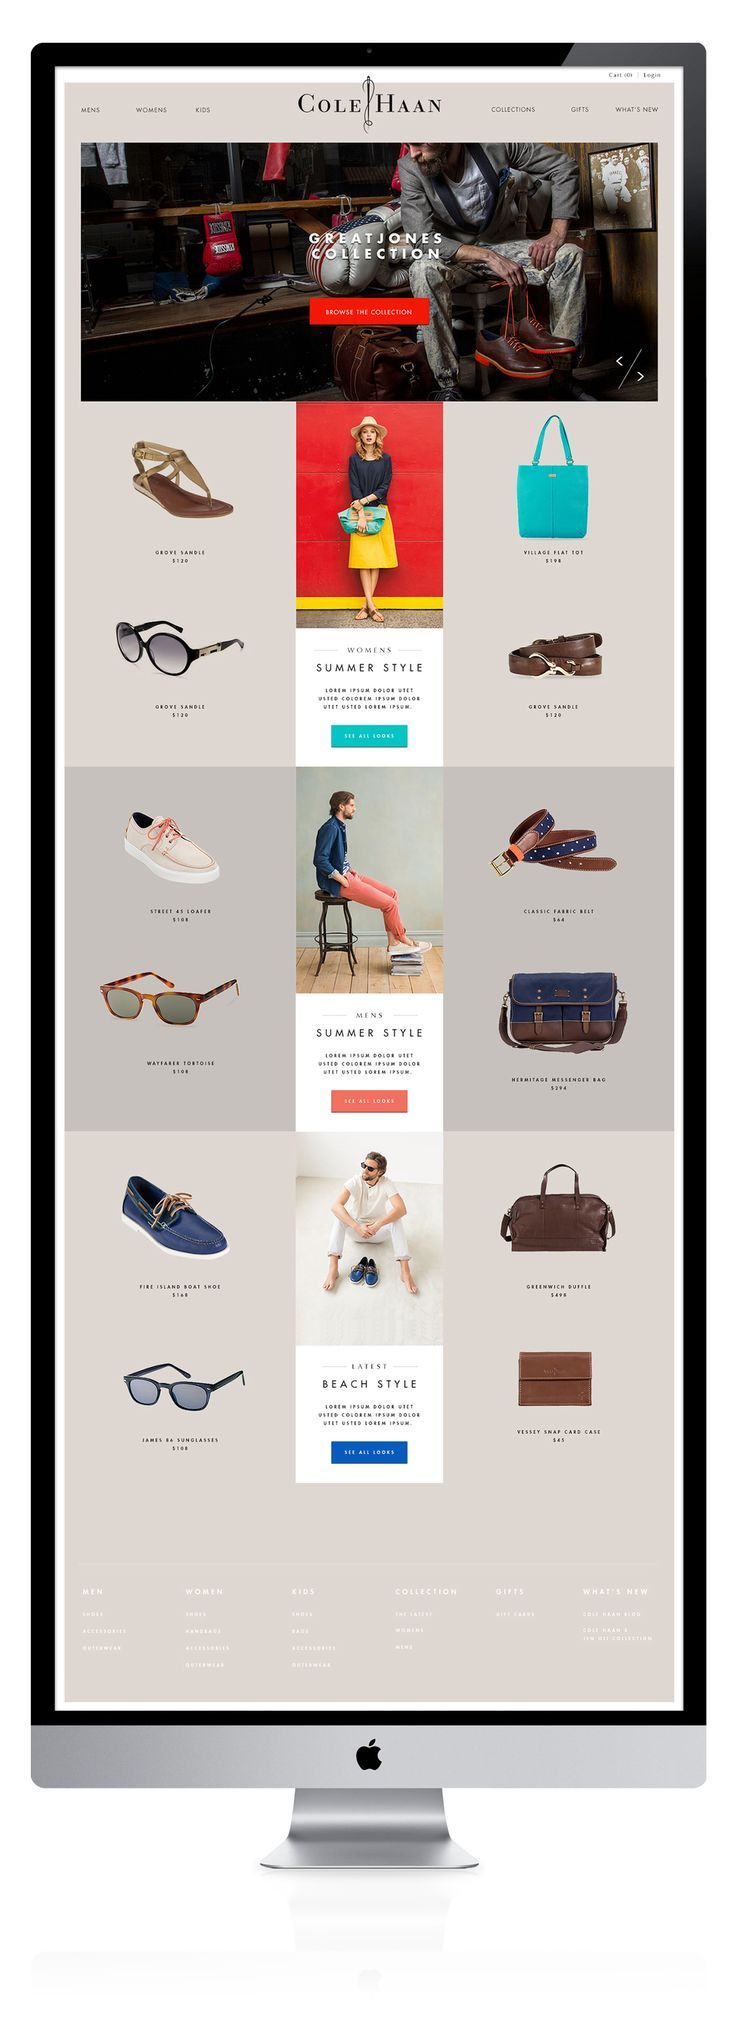 Cole Haan by Joshua Long < repinned by kalypso - web & mobile design | Take a look at http://kalypso.es/ >